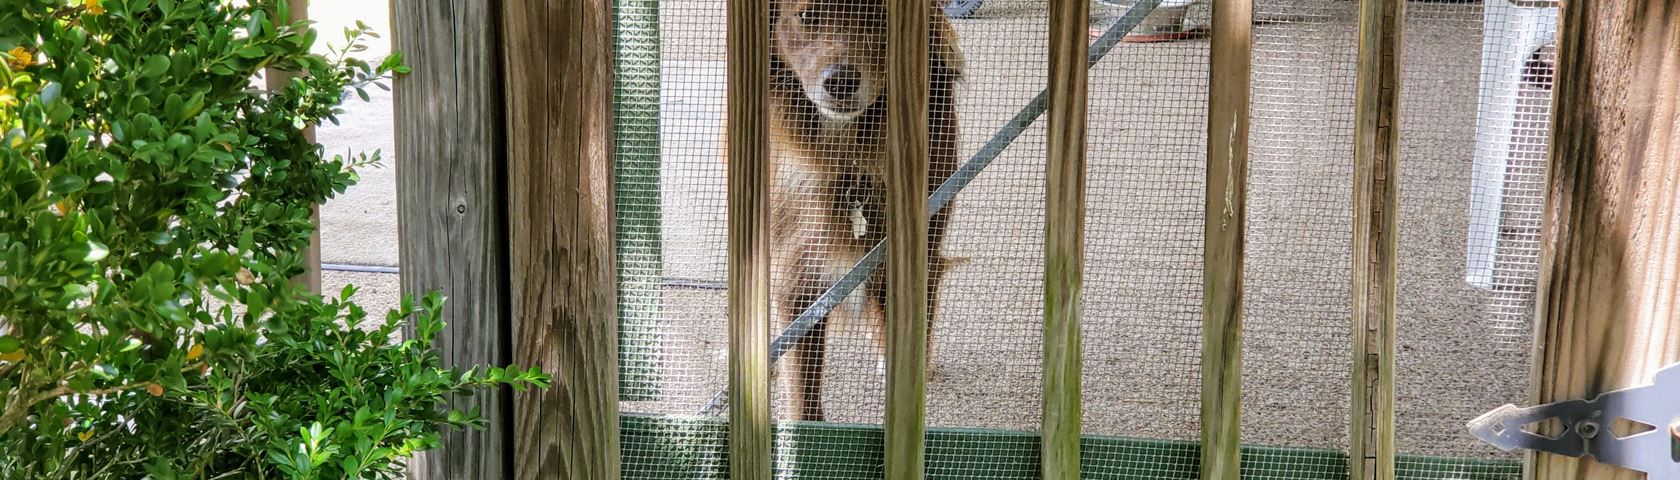 Kuma Imprisoned